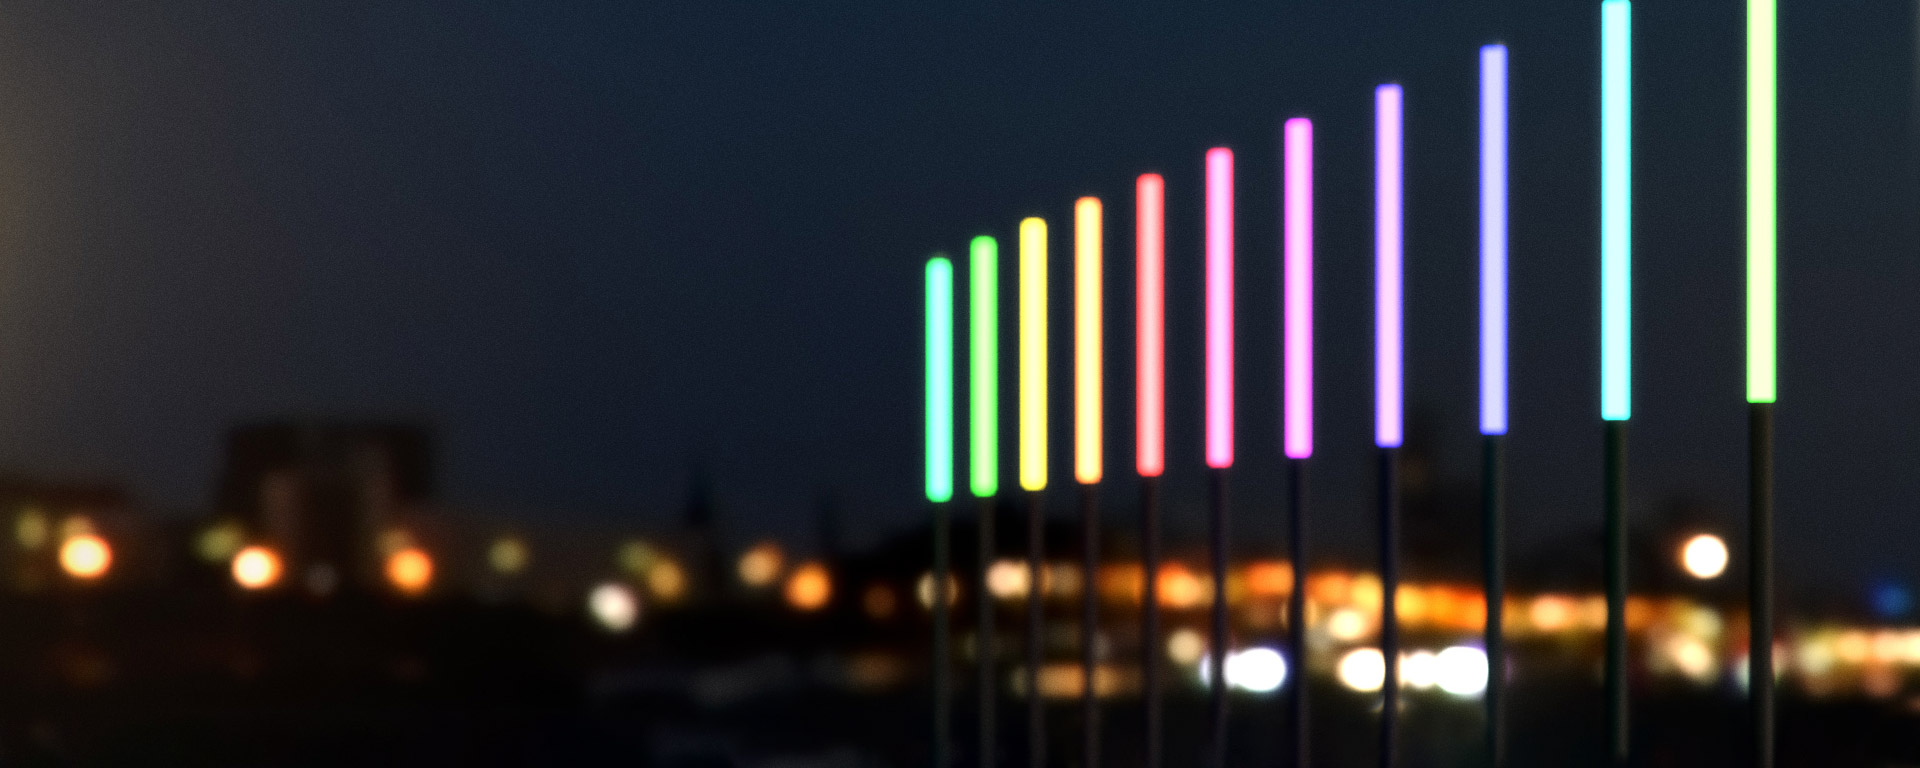 Lonsdale is an RGB pole-top column luminaire that offers a range of dynamic colours enabling the user to create colourful sequences out of a 16.58 million colour range.